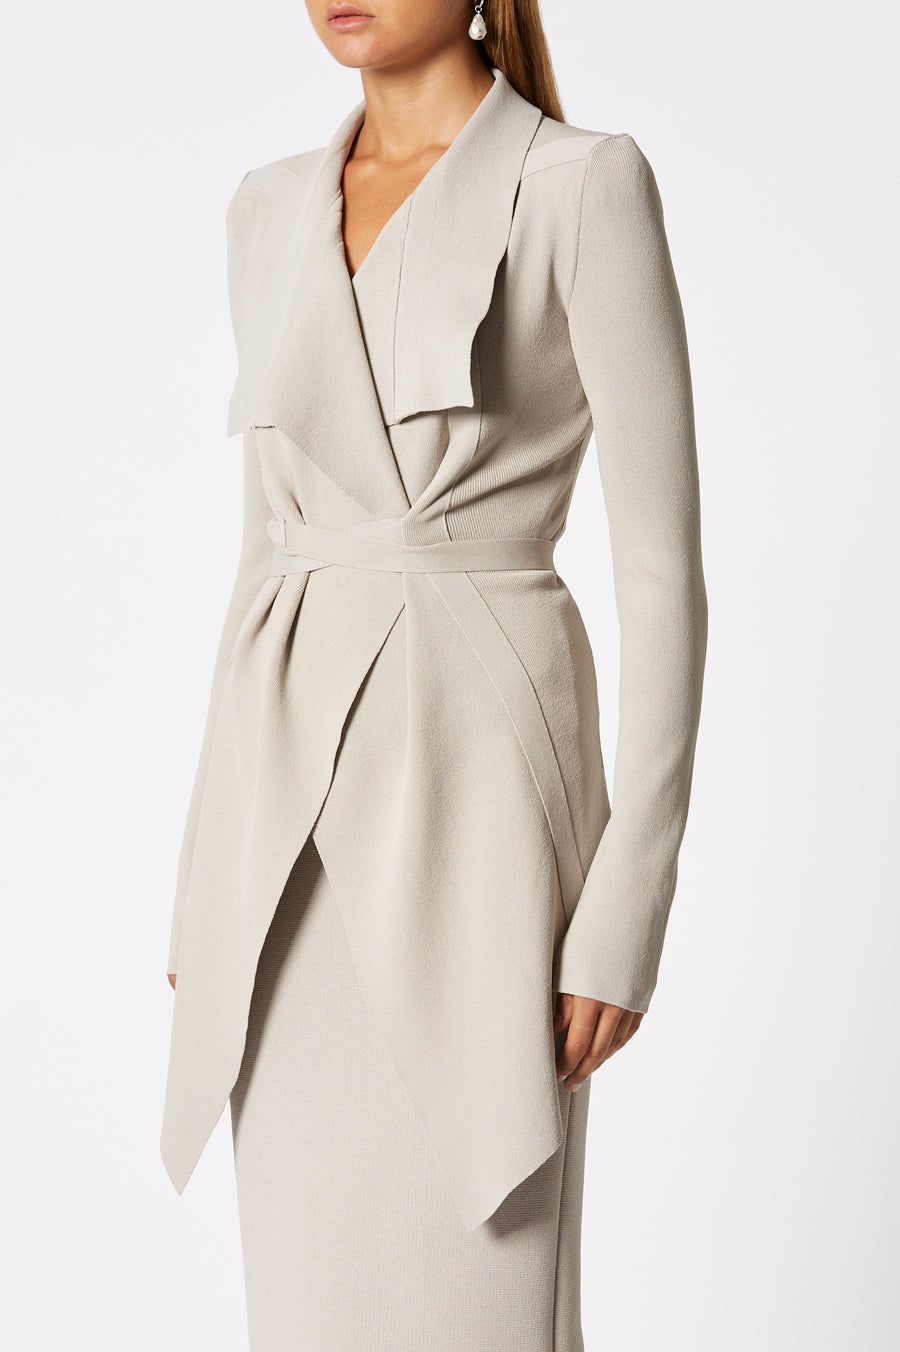 Crepe Knit Drape Front Jacket, tailored jacket, pointed collar, fitted bodice, shoulder pads, flap pocket detail, Color Oyster